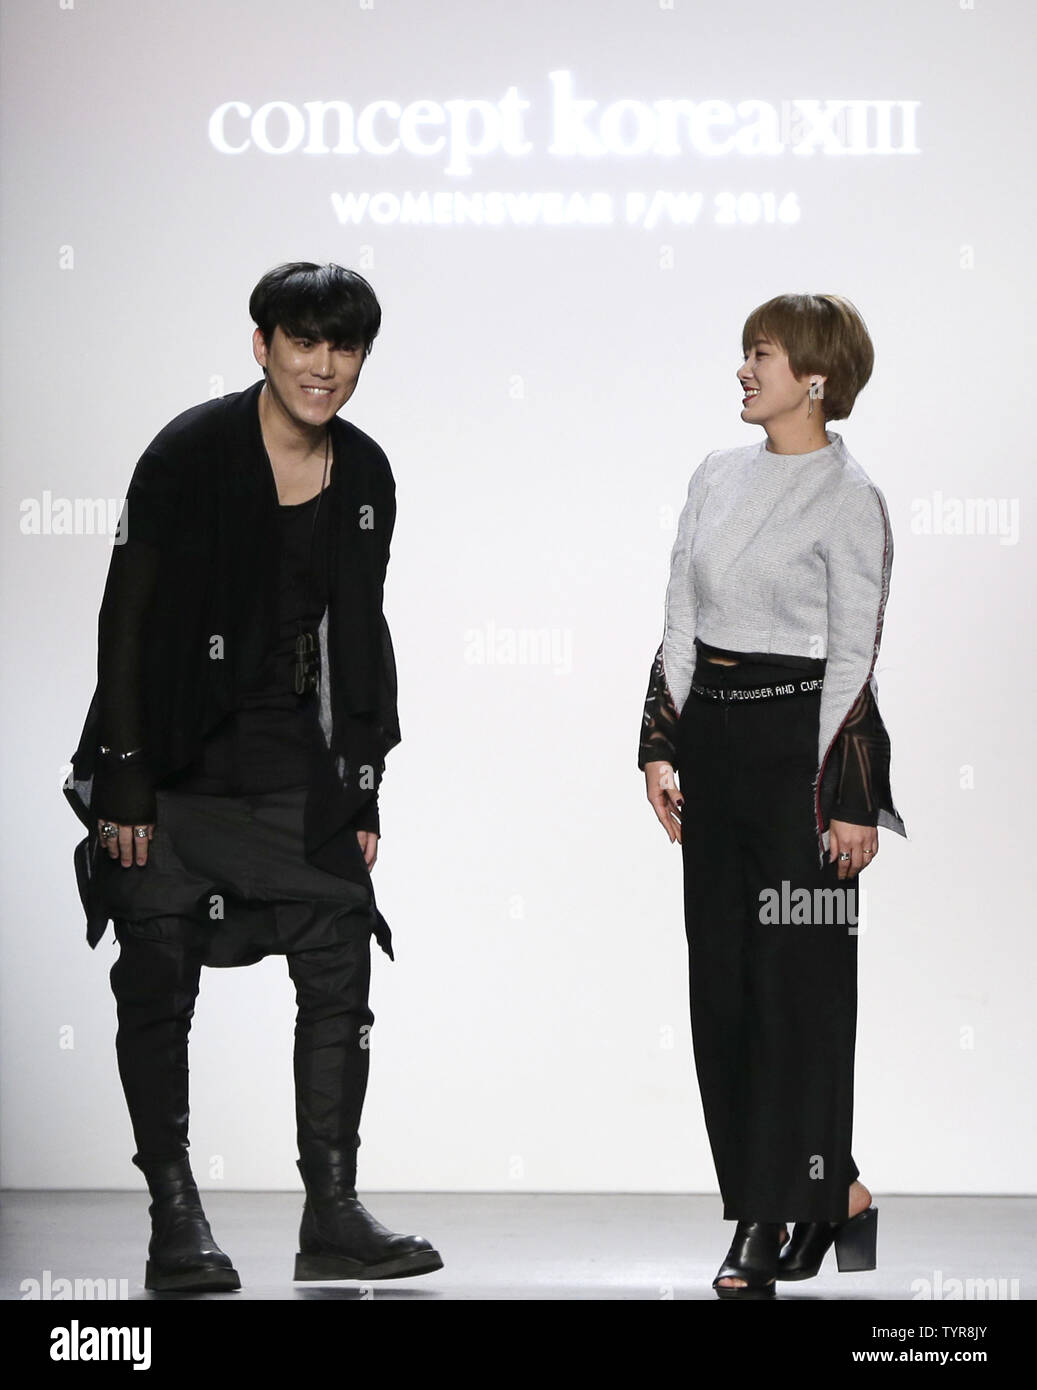 Designers Step Out On The Runway After The Concept Korea Fashion Show Fall 2016 Collection At Skylight At Moynihan Station During Fall 2016 New York Fashion Week On February 12 2016 In